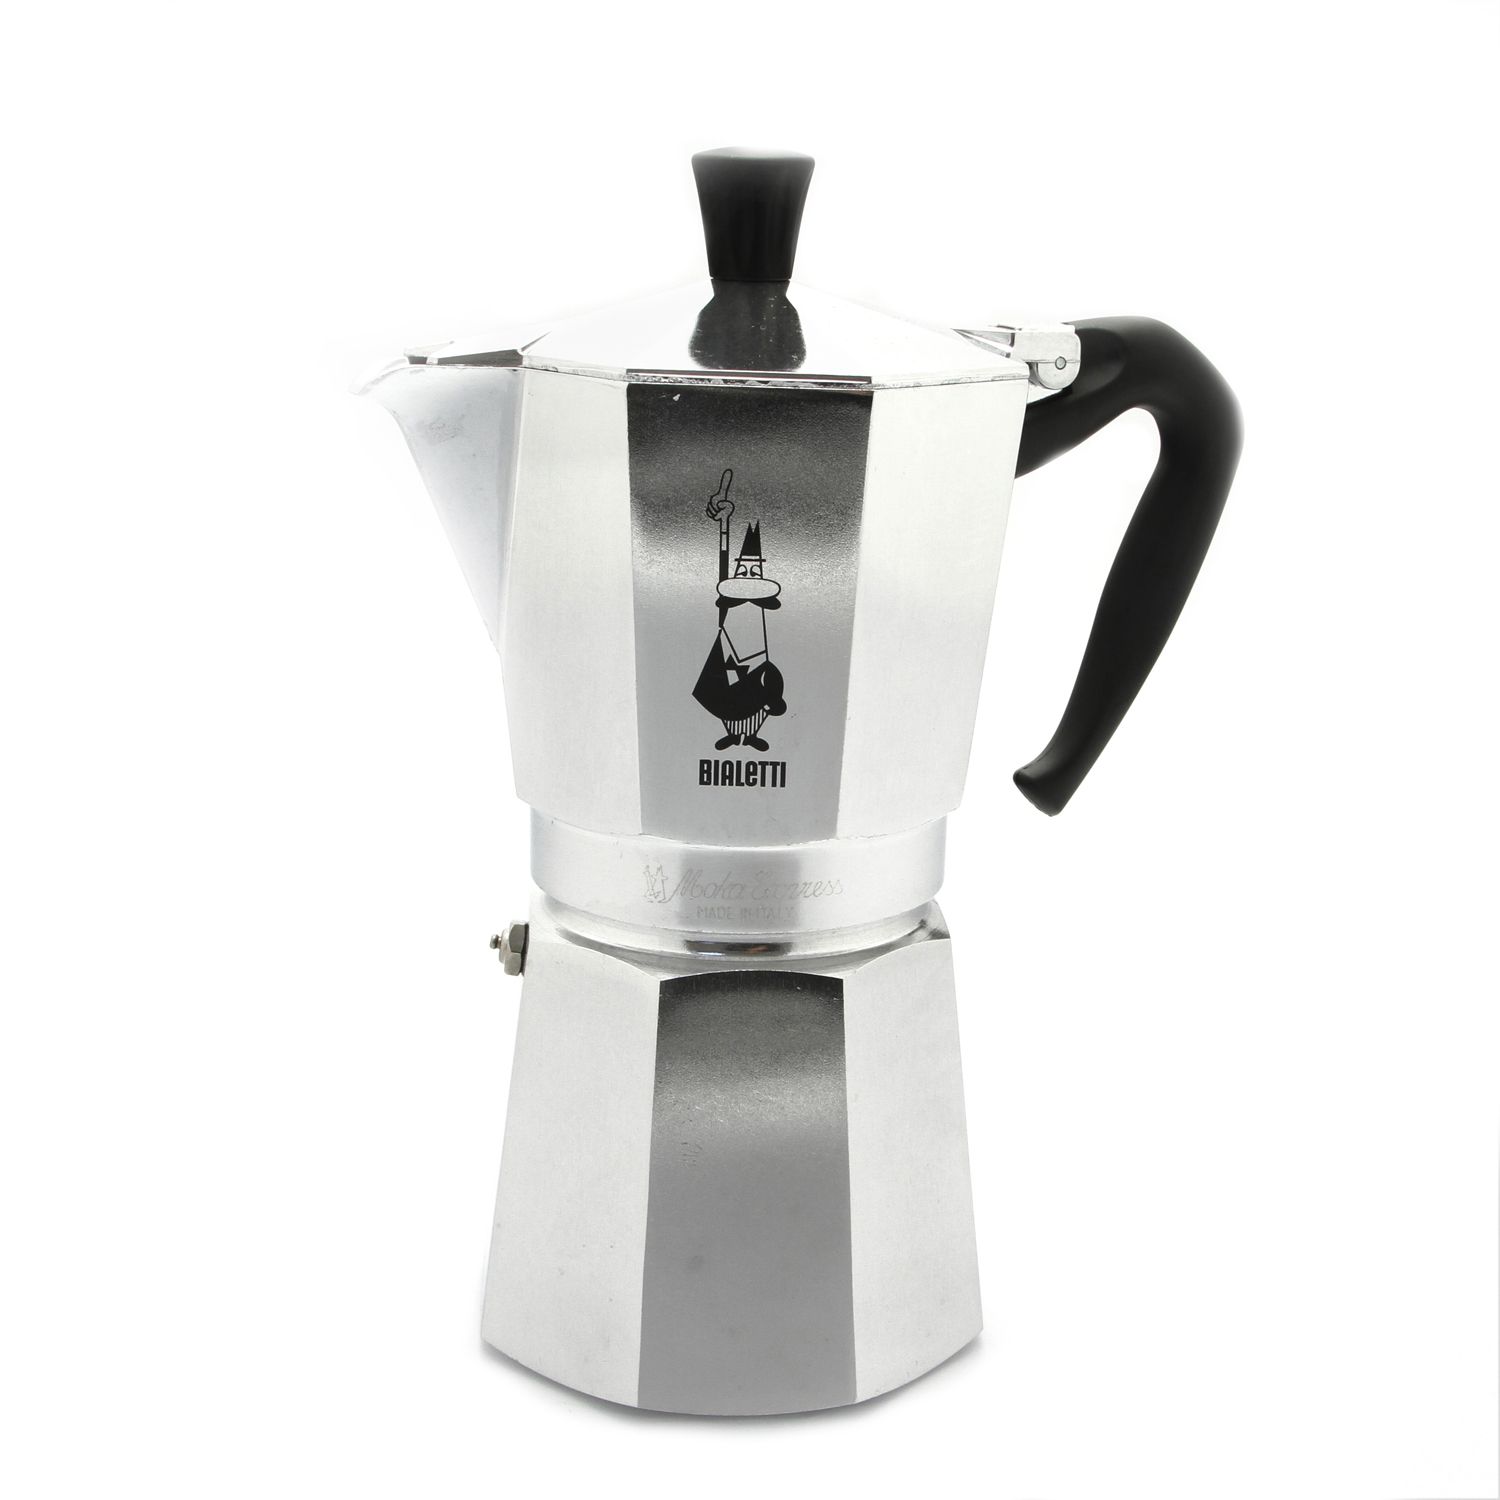 bialetti moka express 9 cup home store more. Black Bedroom Furniture Sets. Home Design Ideas